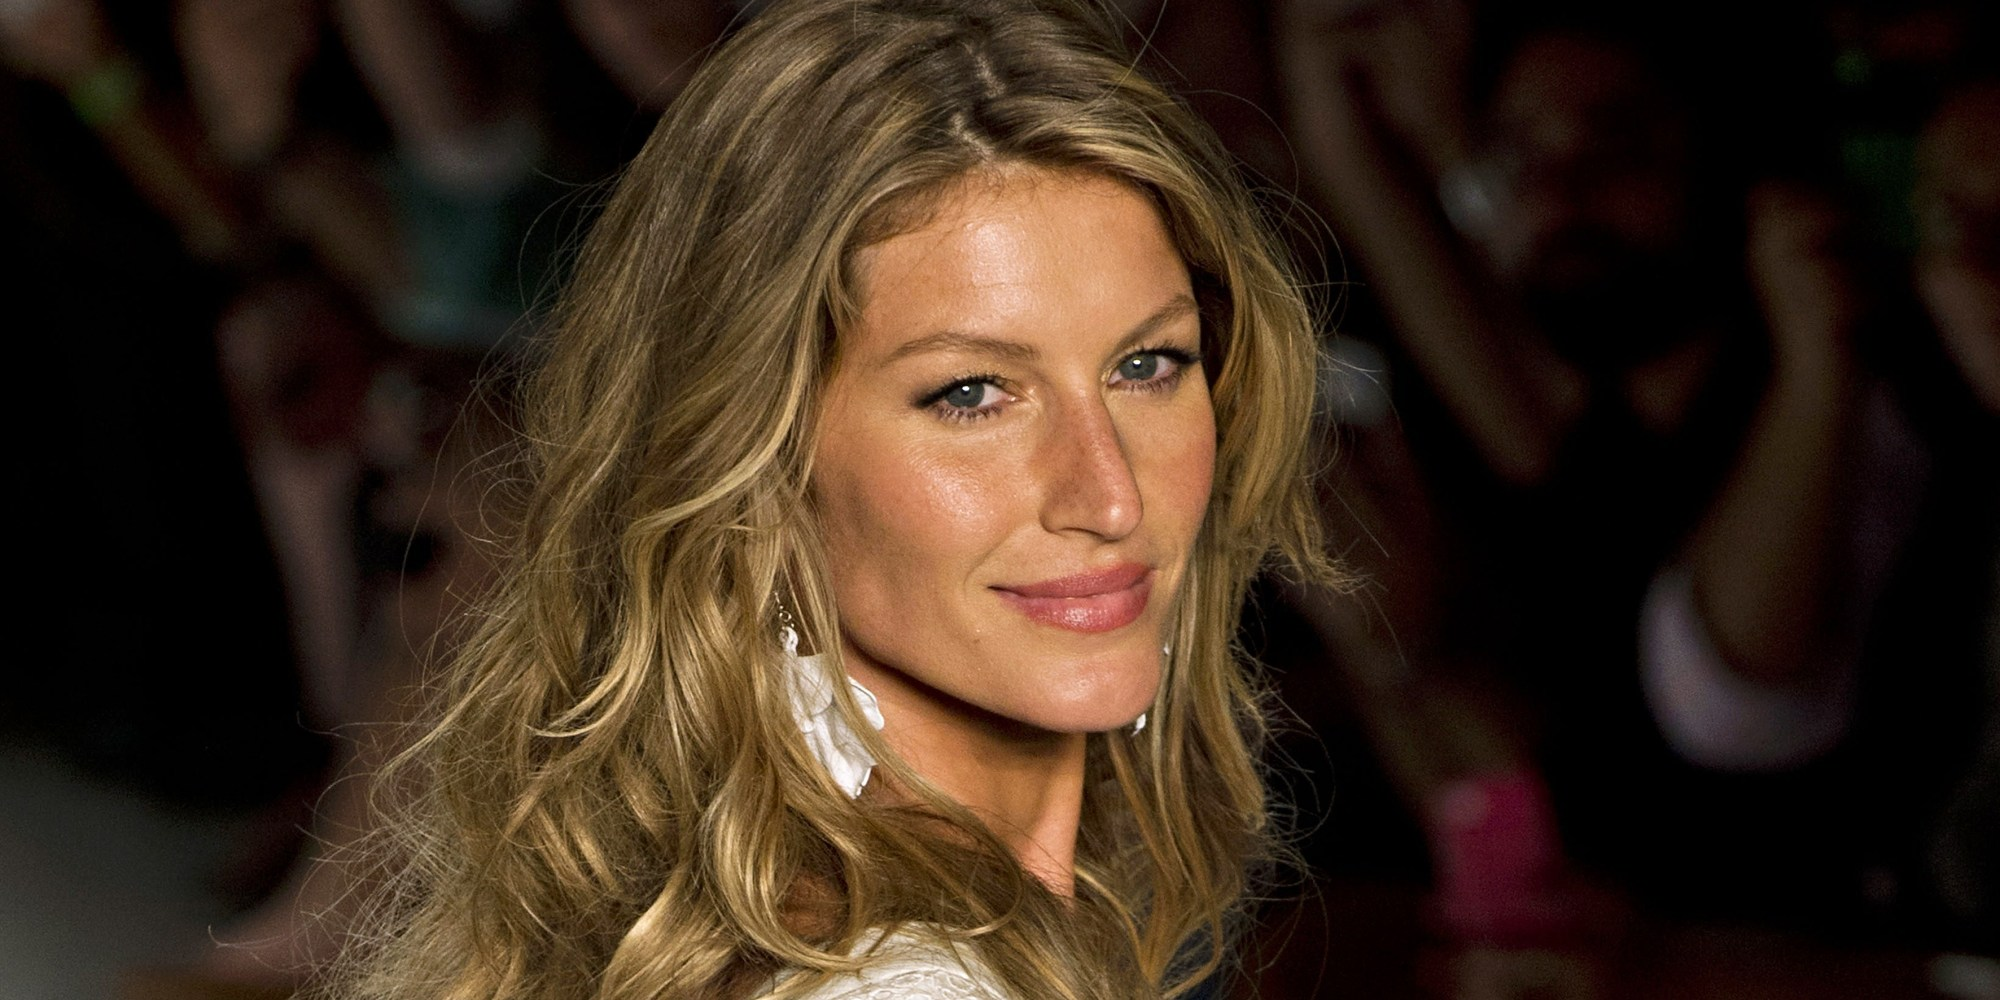 Gisele Bundchen widescreen wallpapers